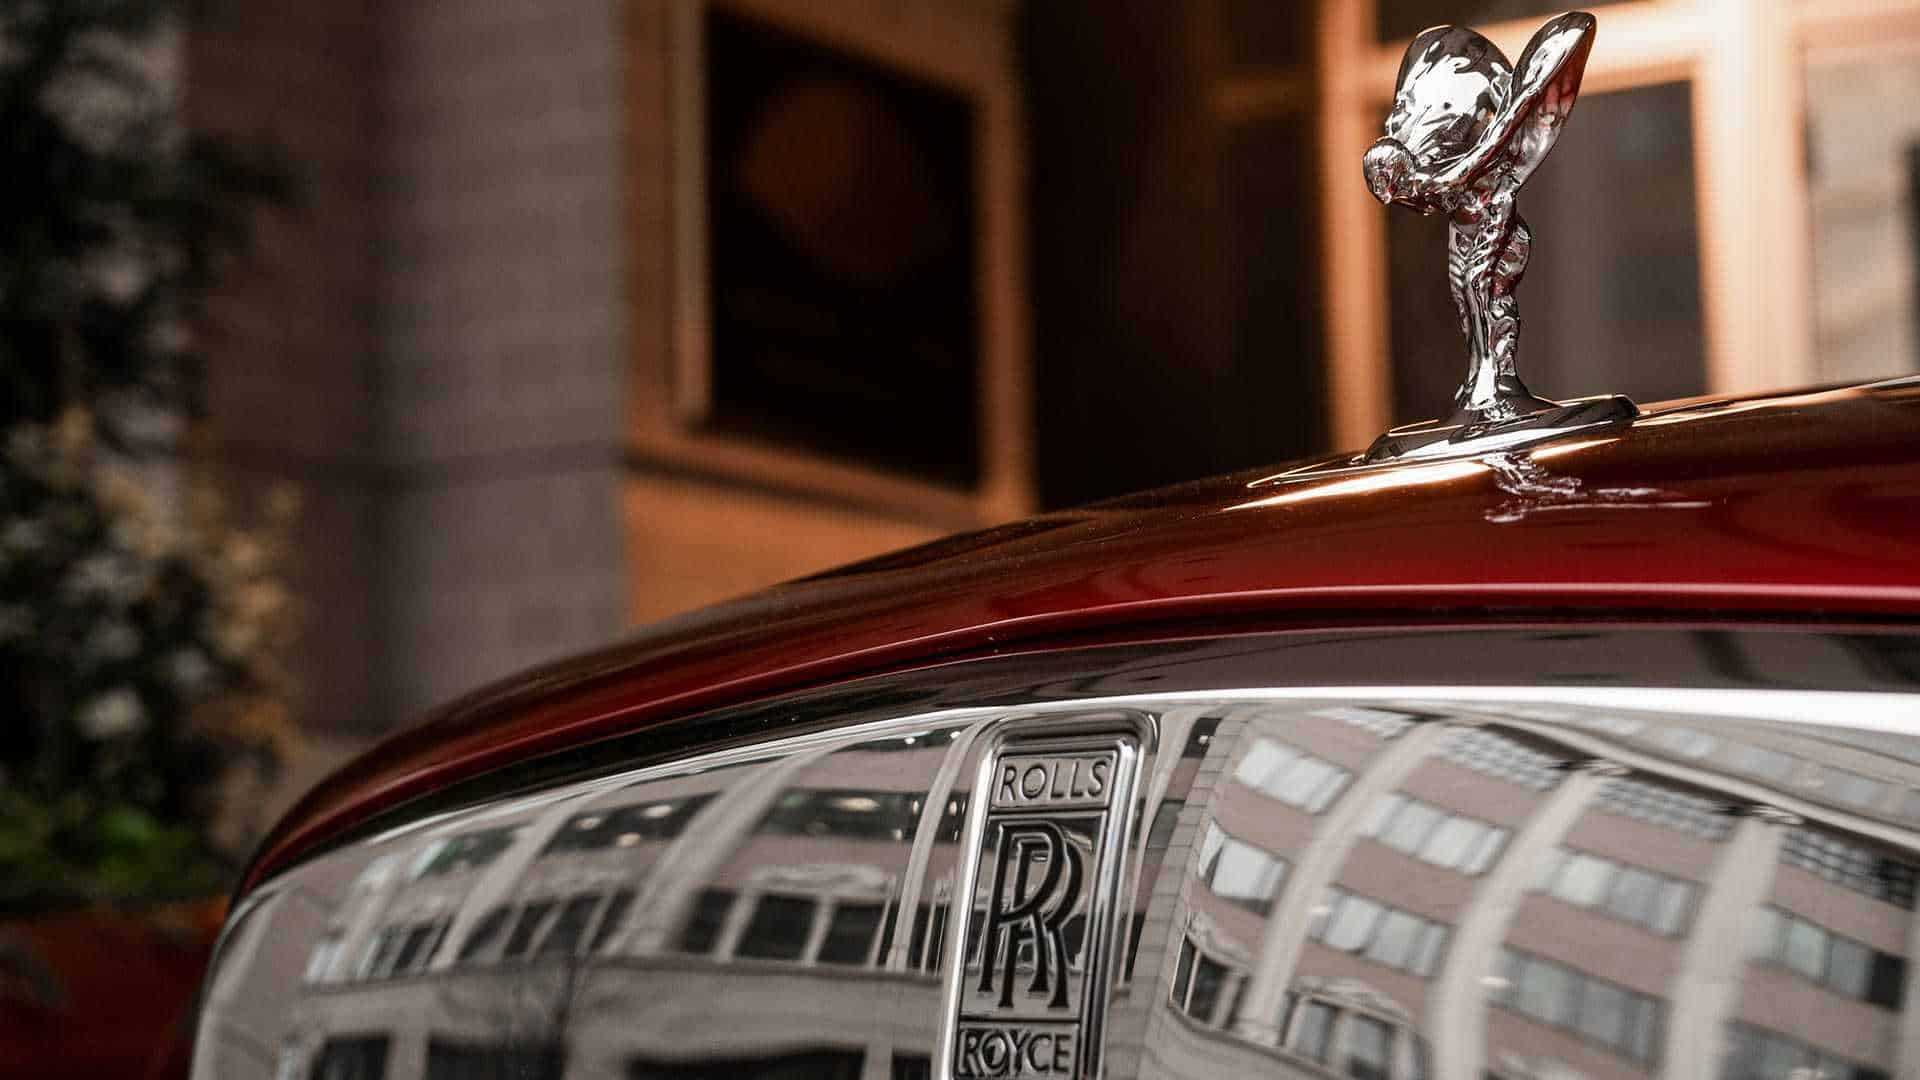 Rolls-Royce Year of the Pig 11